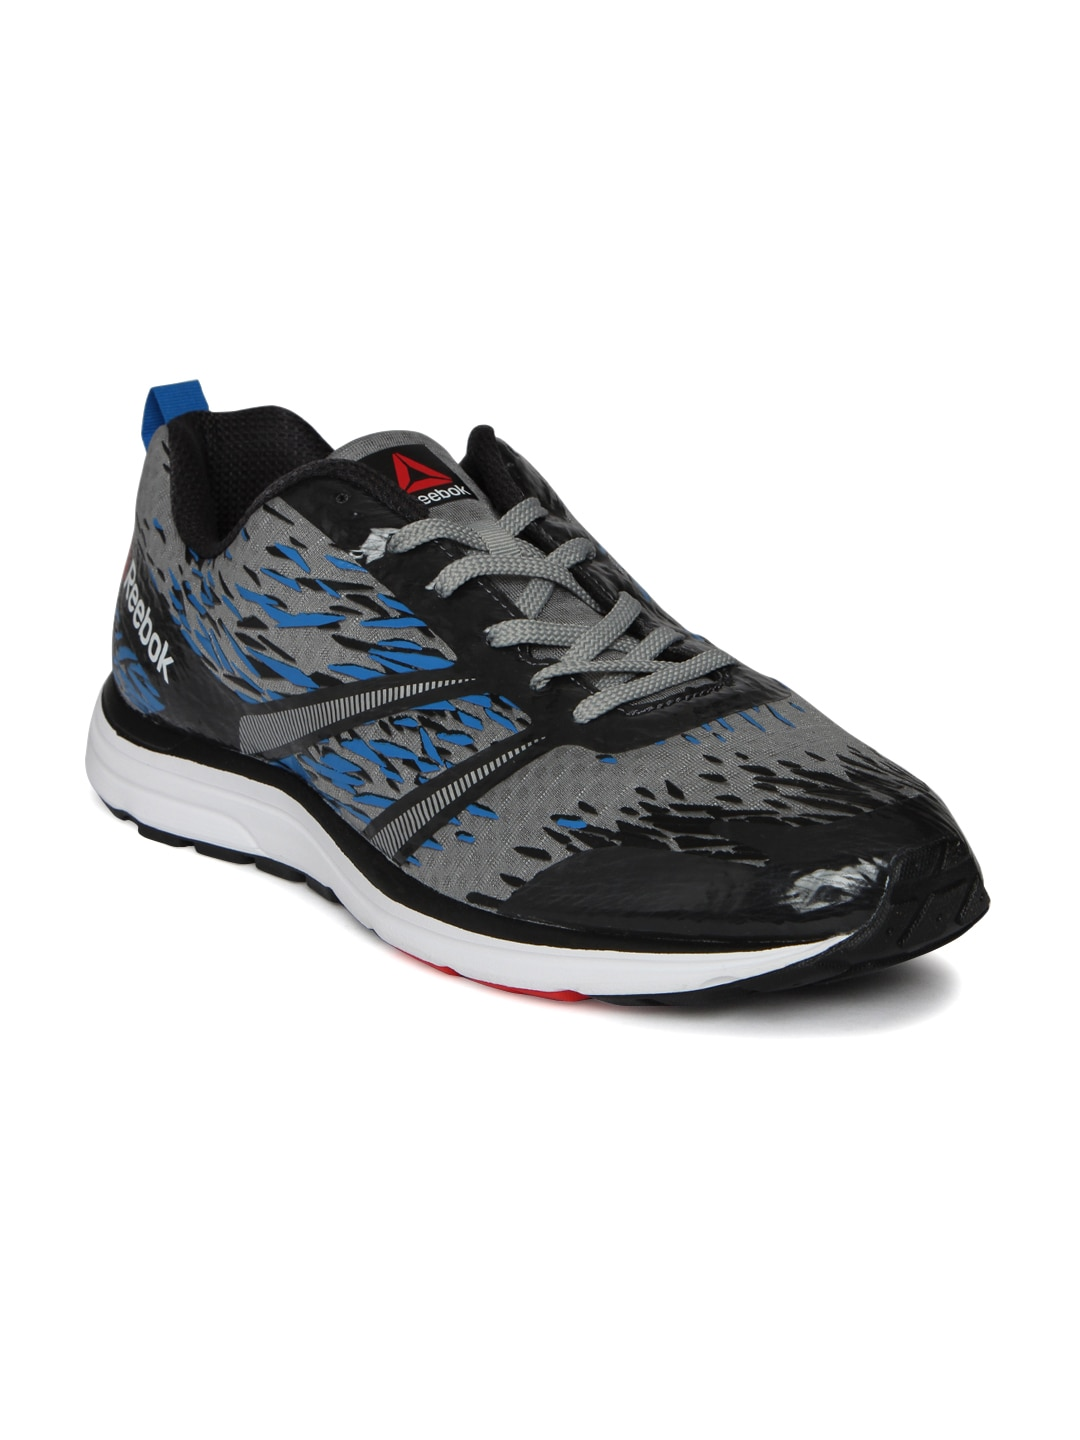 15fbaec58f3a4d Bbd Sports Allstyles - Buy Bbd Sports Allstyles online in India